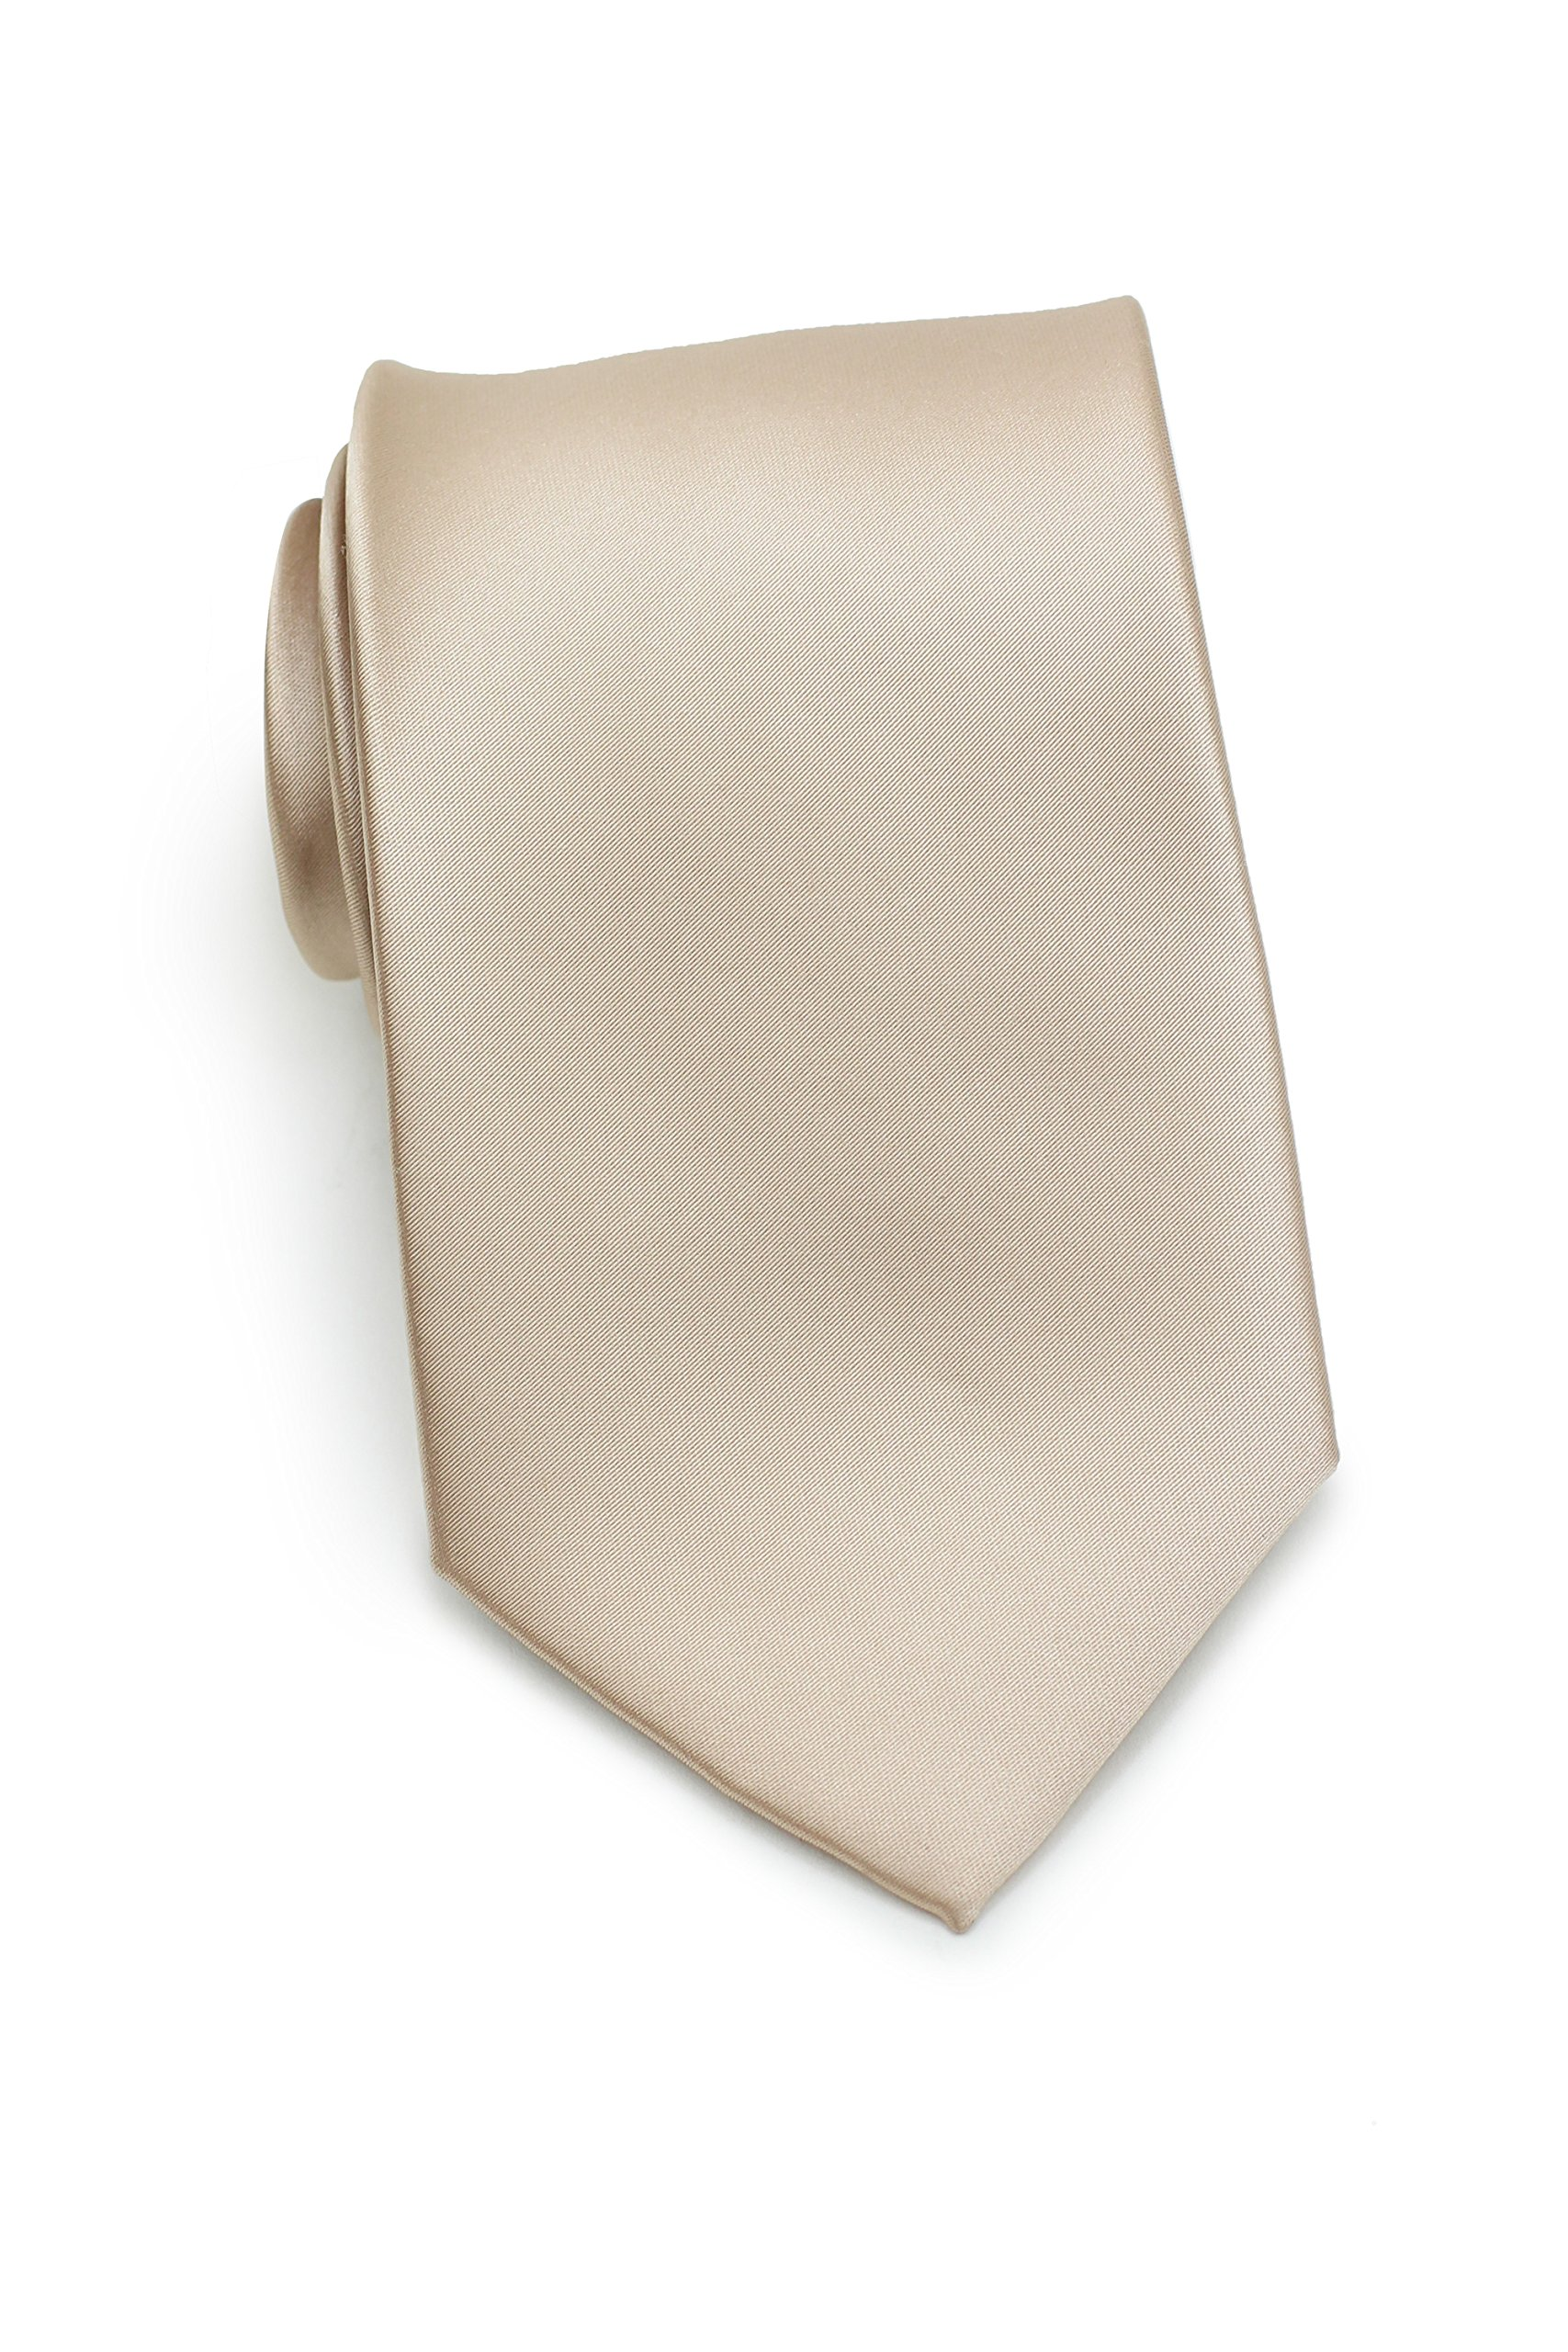 Bows-N-Ties Men's Necktie Solid Color Microfiber Satin Tie 3.25 Inches (Champagne) by PUCCINI